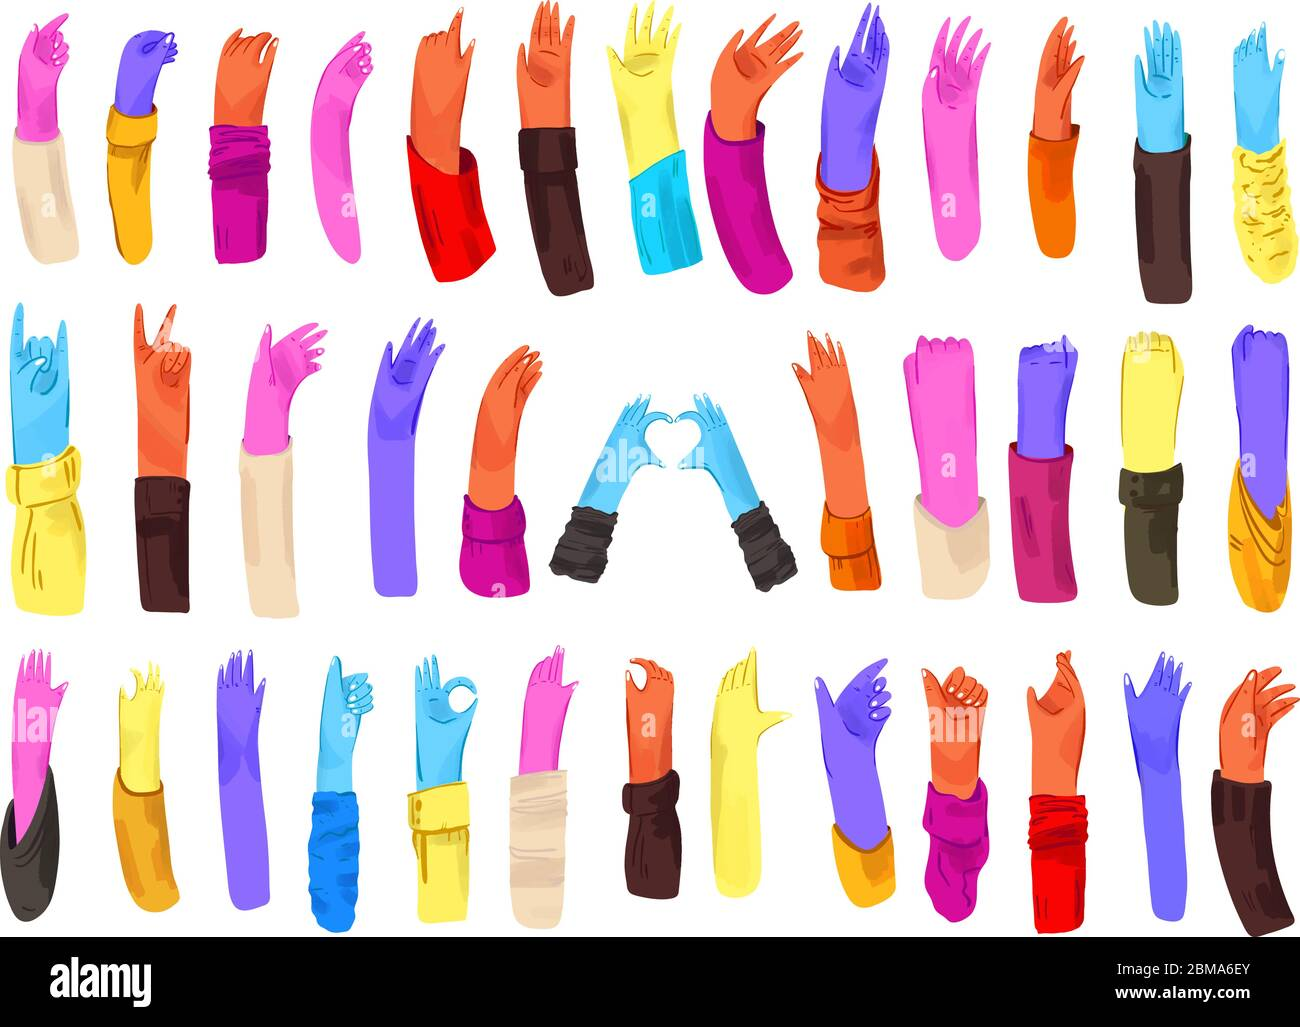 Human bright colored hands with collection of signs and hand gestures - ok, love, greetings, waving hands, phone and app control with fingers, fist up Stock Vector